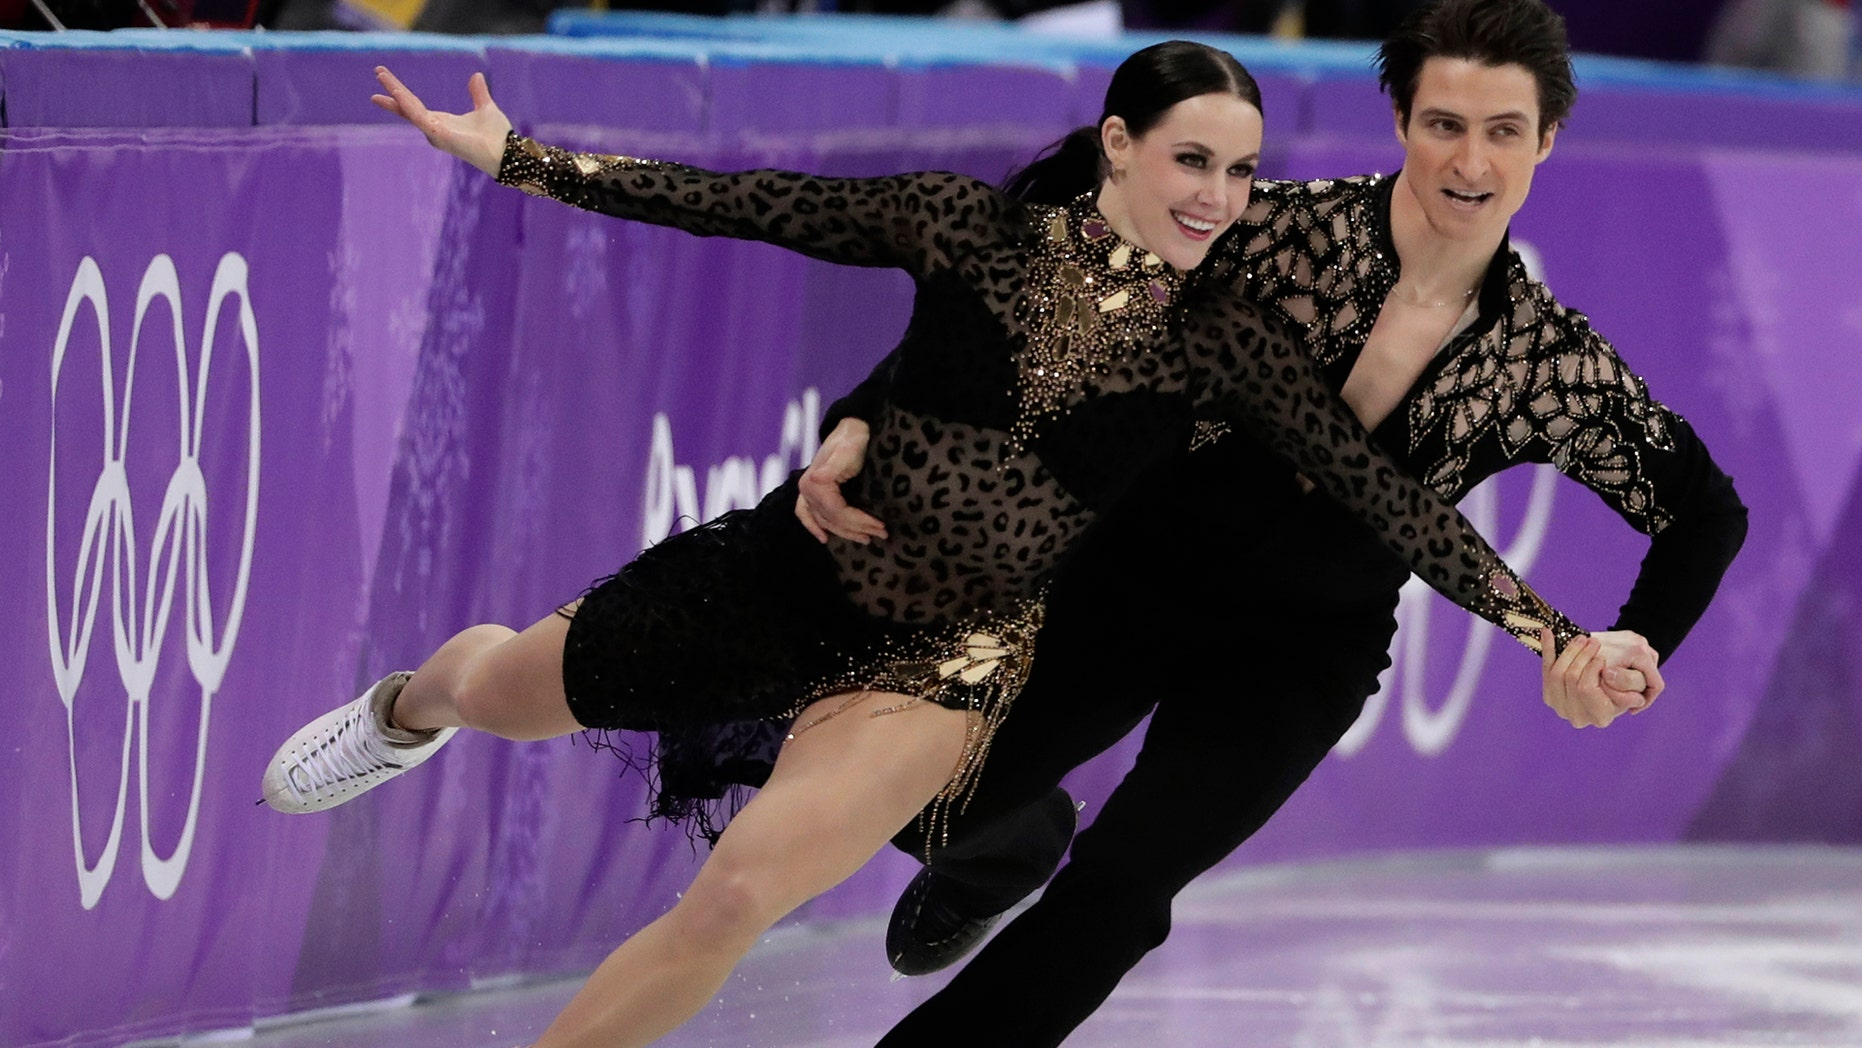 Tessa Virtue and Scott Moir of Canada perform during the ice dance, short dance figure skating in the Gangneung Ice Arena at the 2018 Winter Olympics in Gangneung, South Korea, Monday, Feb. 19, 2018. (AP Photo/Julie Jacobson)